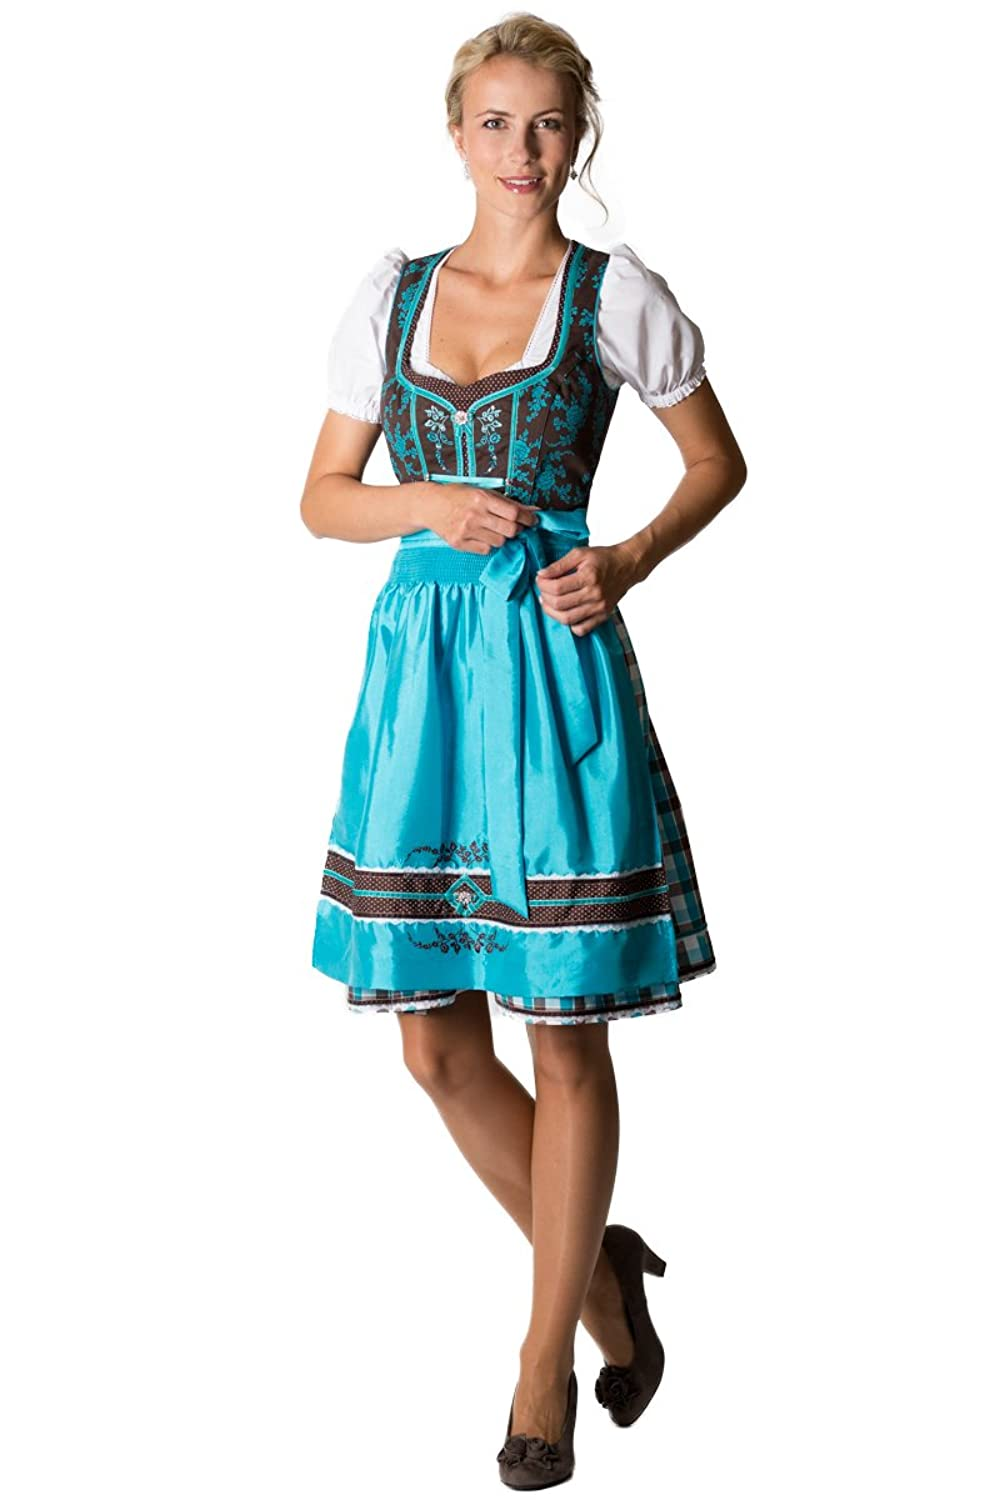 spieth wensky damen mini dirndl adria braun blau d010181 g nstig kaufen. Black Bedroom Furniture Sets. Home Design Ideas